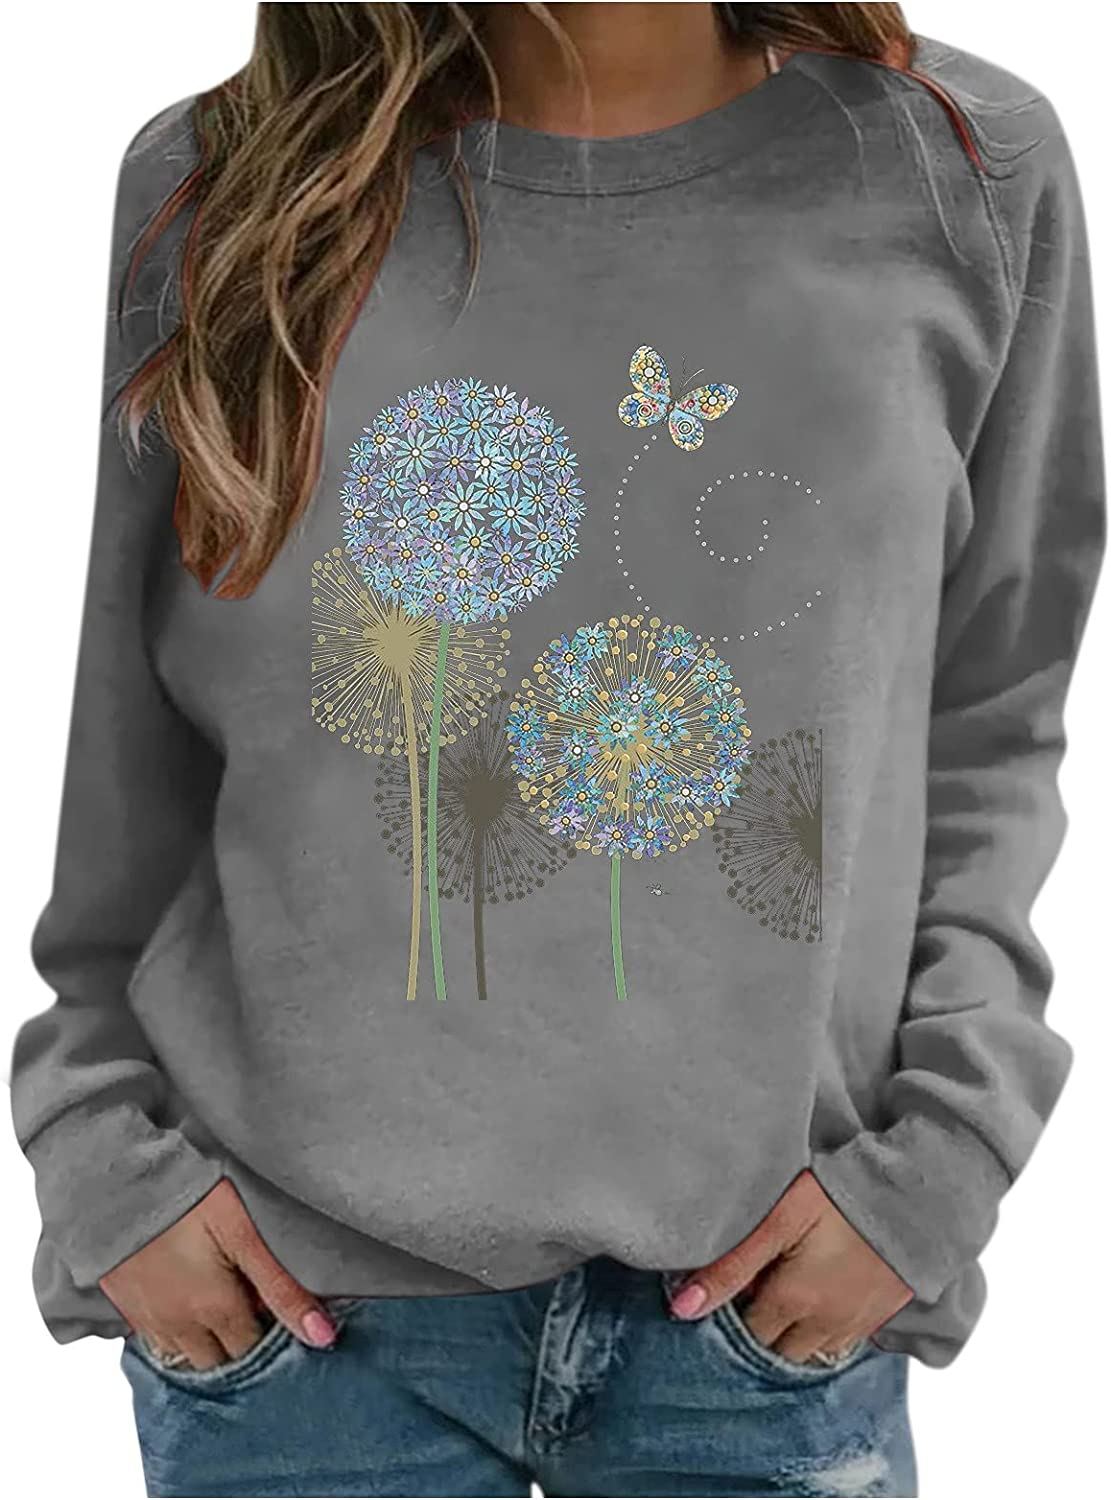 Womens Printing Sweater Round Neck Pullover Casual Long Sleeved Tops T-shirt